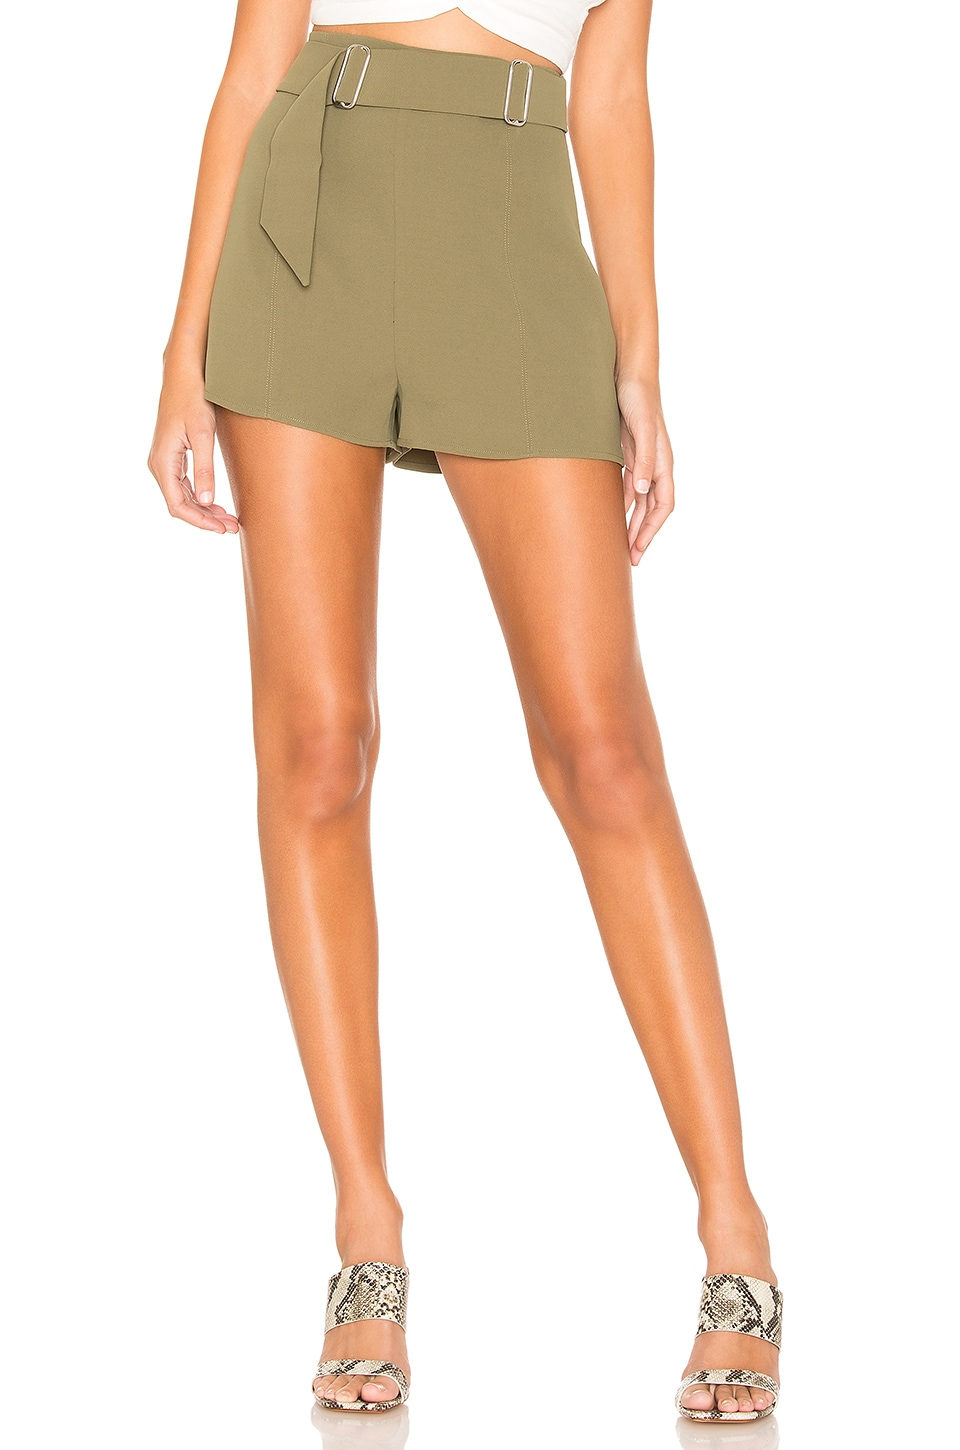 L'Academie Jax Shorts in Olive